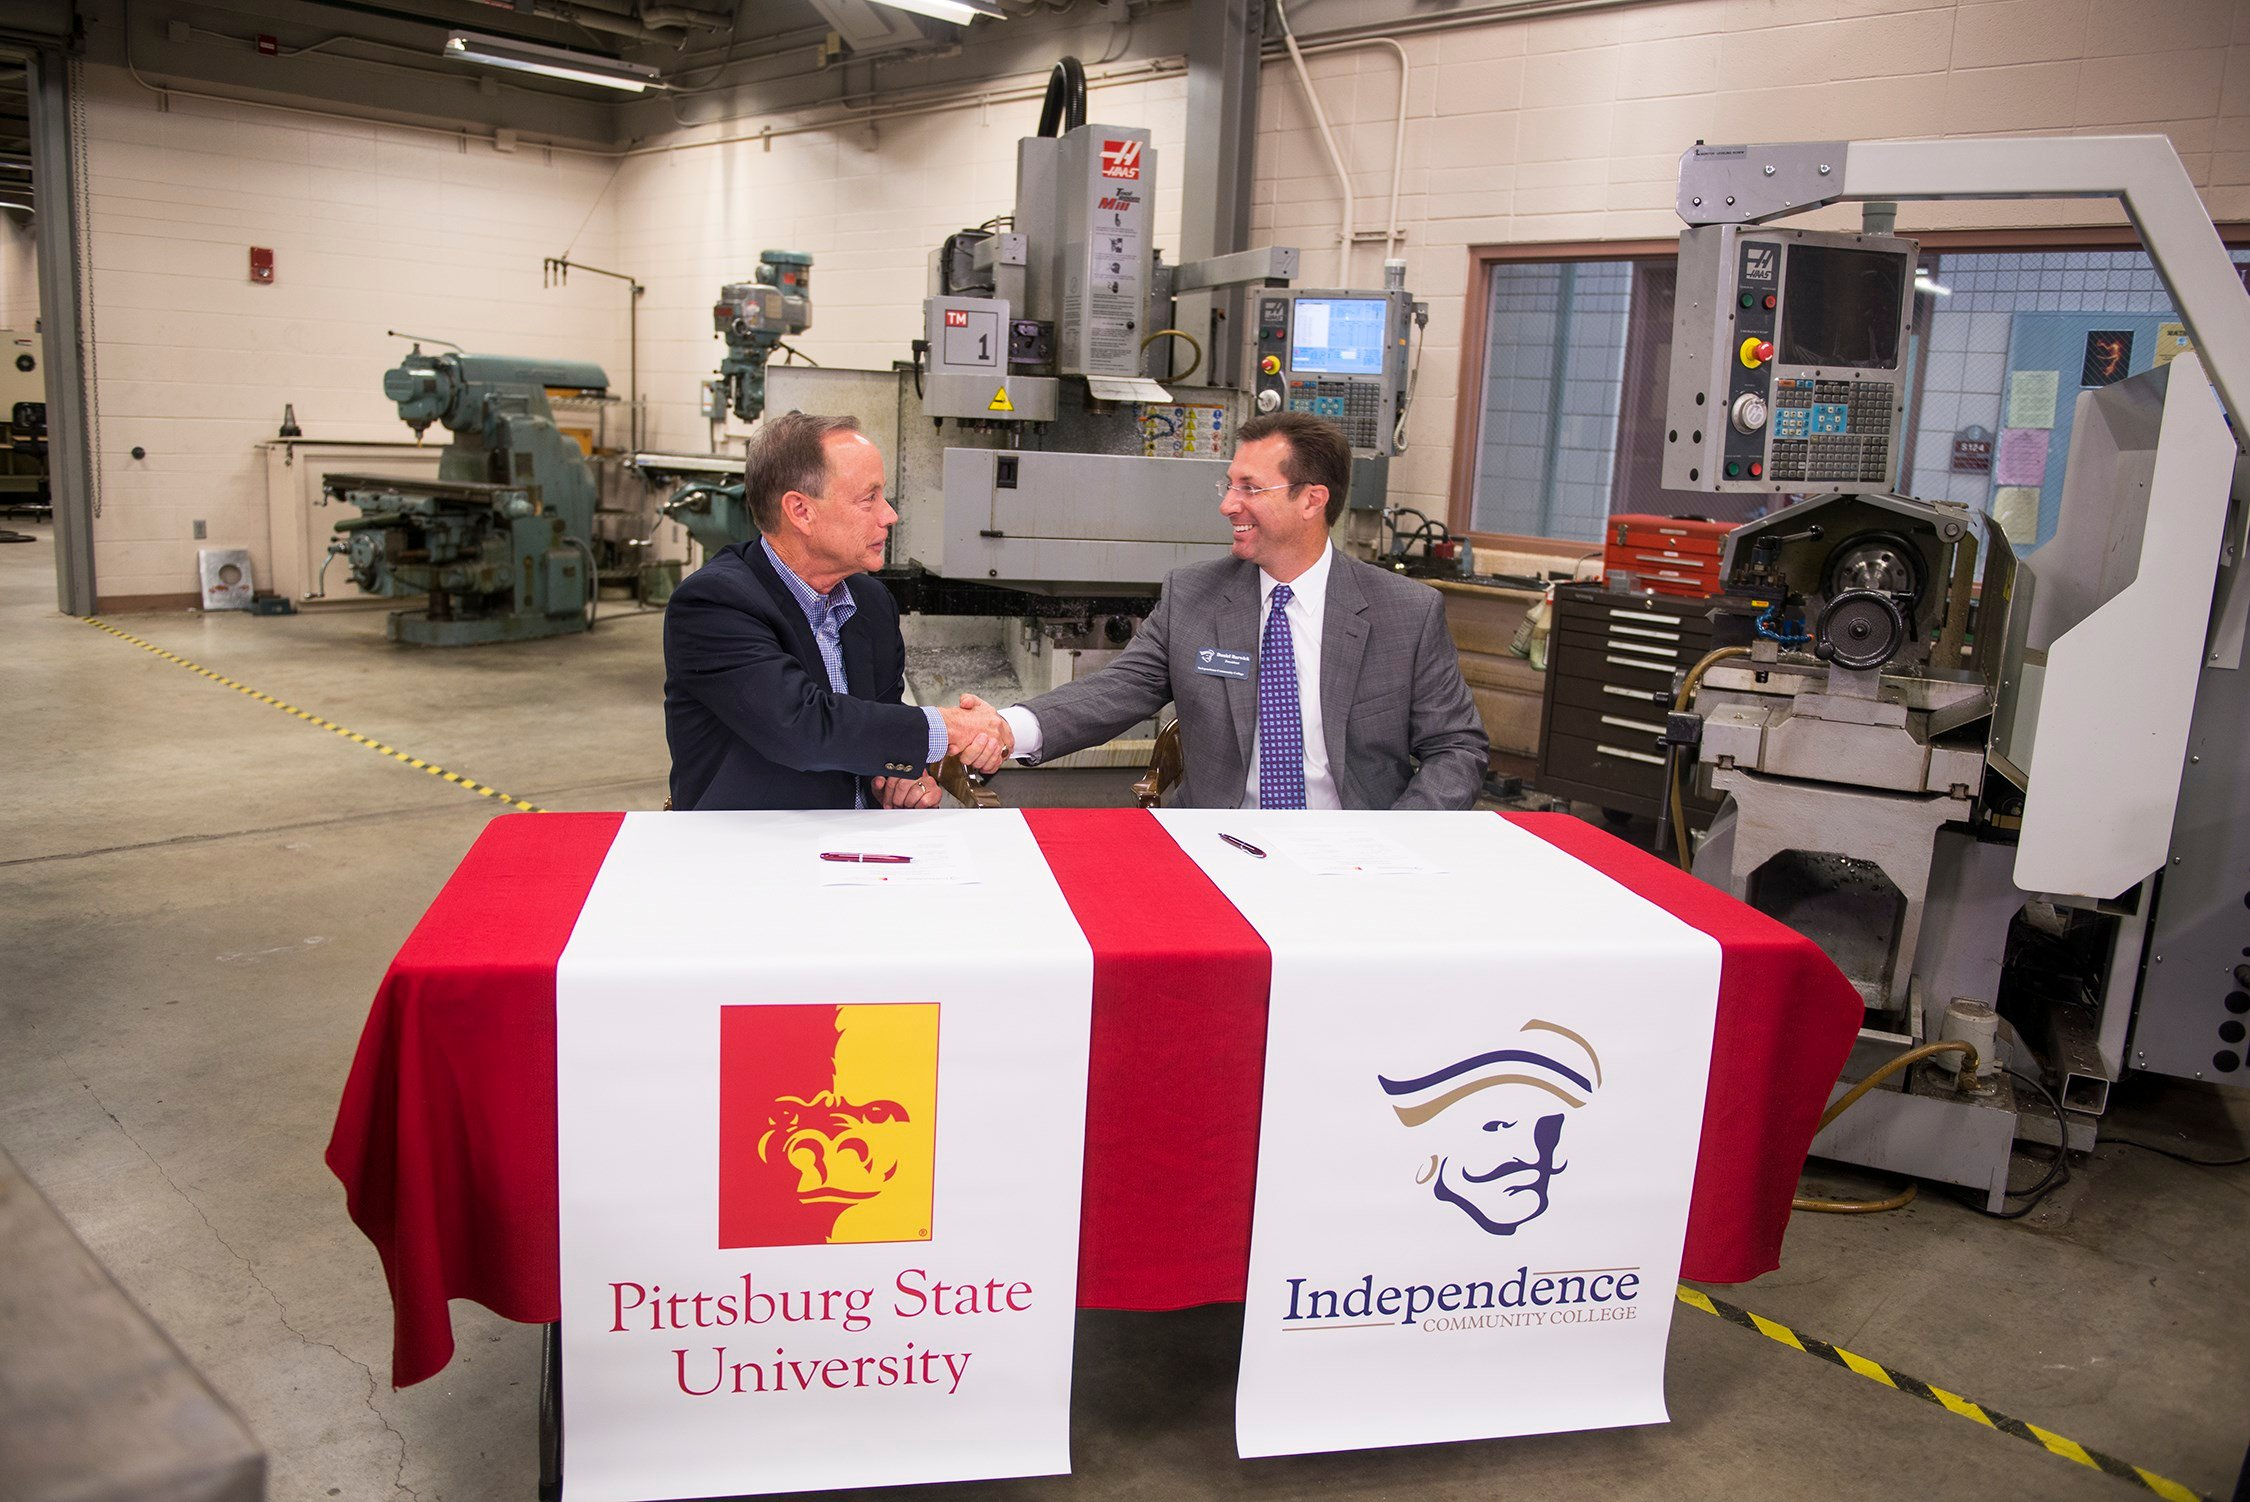 Steve Scott, president of Pittsburg State University, and Daniel Barwick, president of Independence Community College, seal the signing of an articulation agreement with a handshake on Tuesday morning at the Kansas Technology Center.